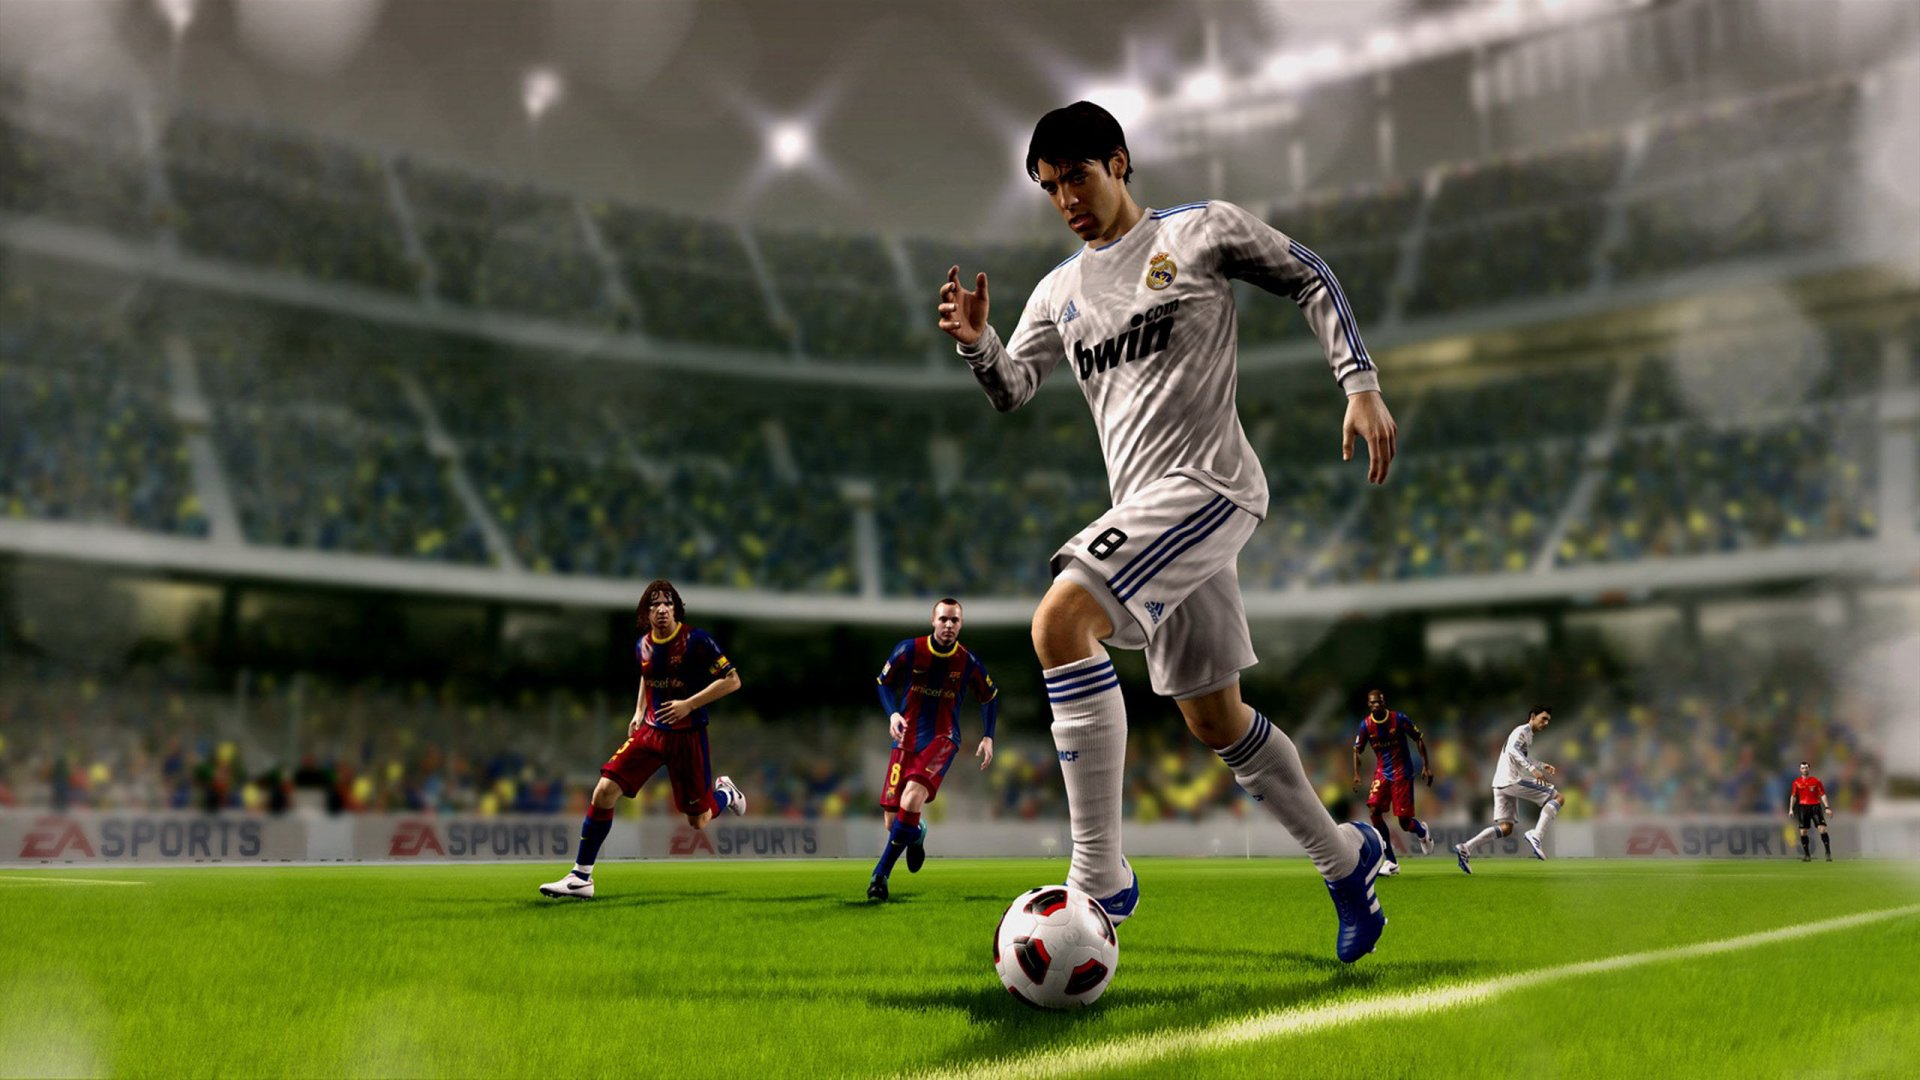 HD FIFA Wallpaper